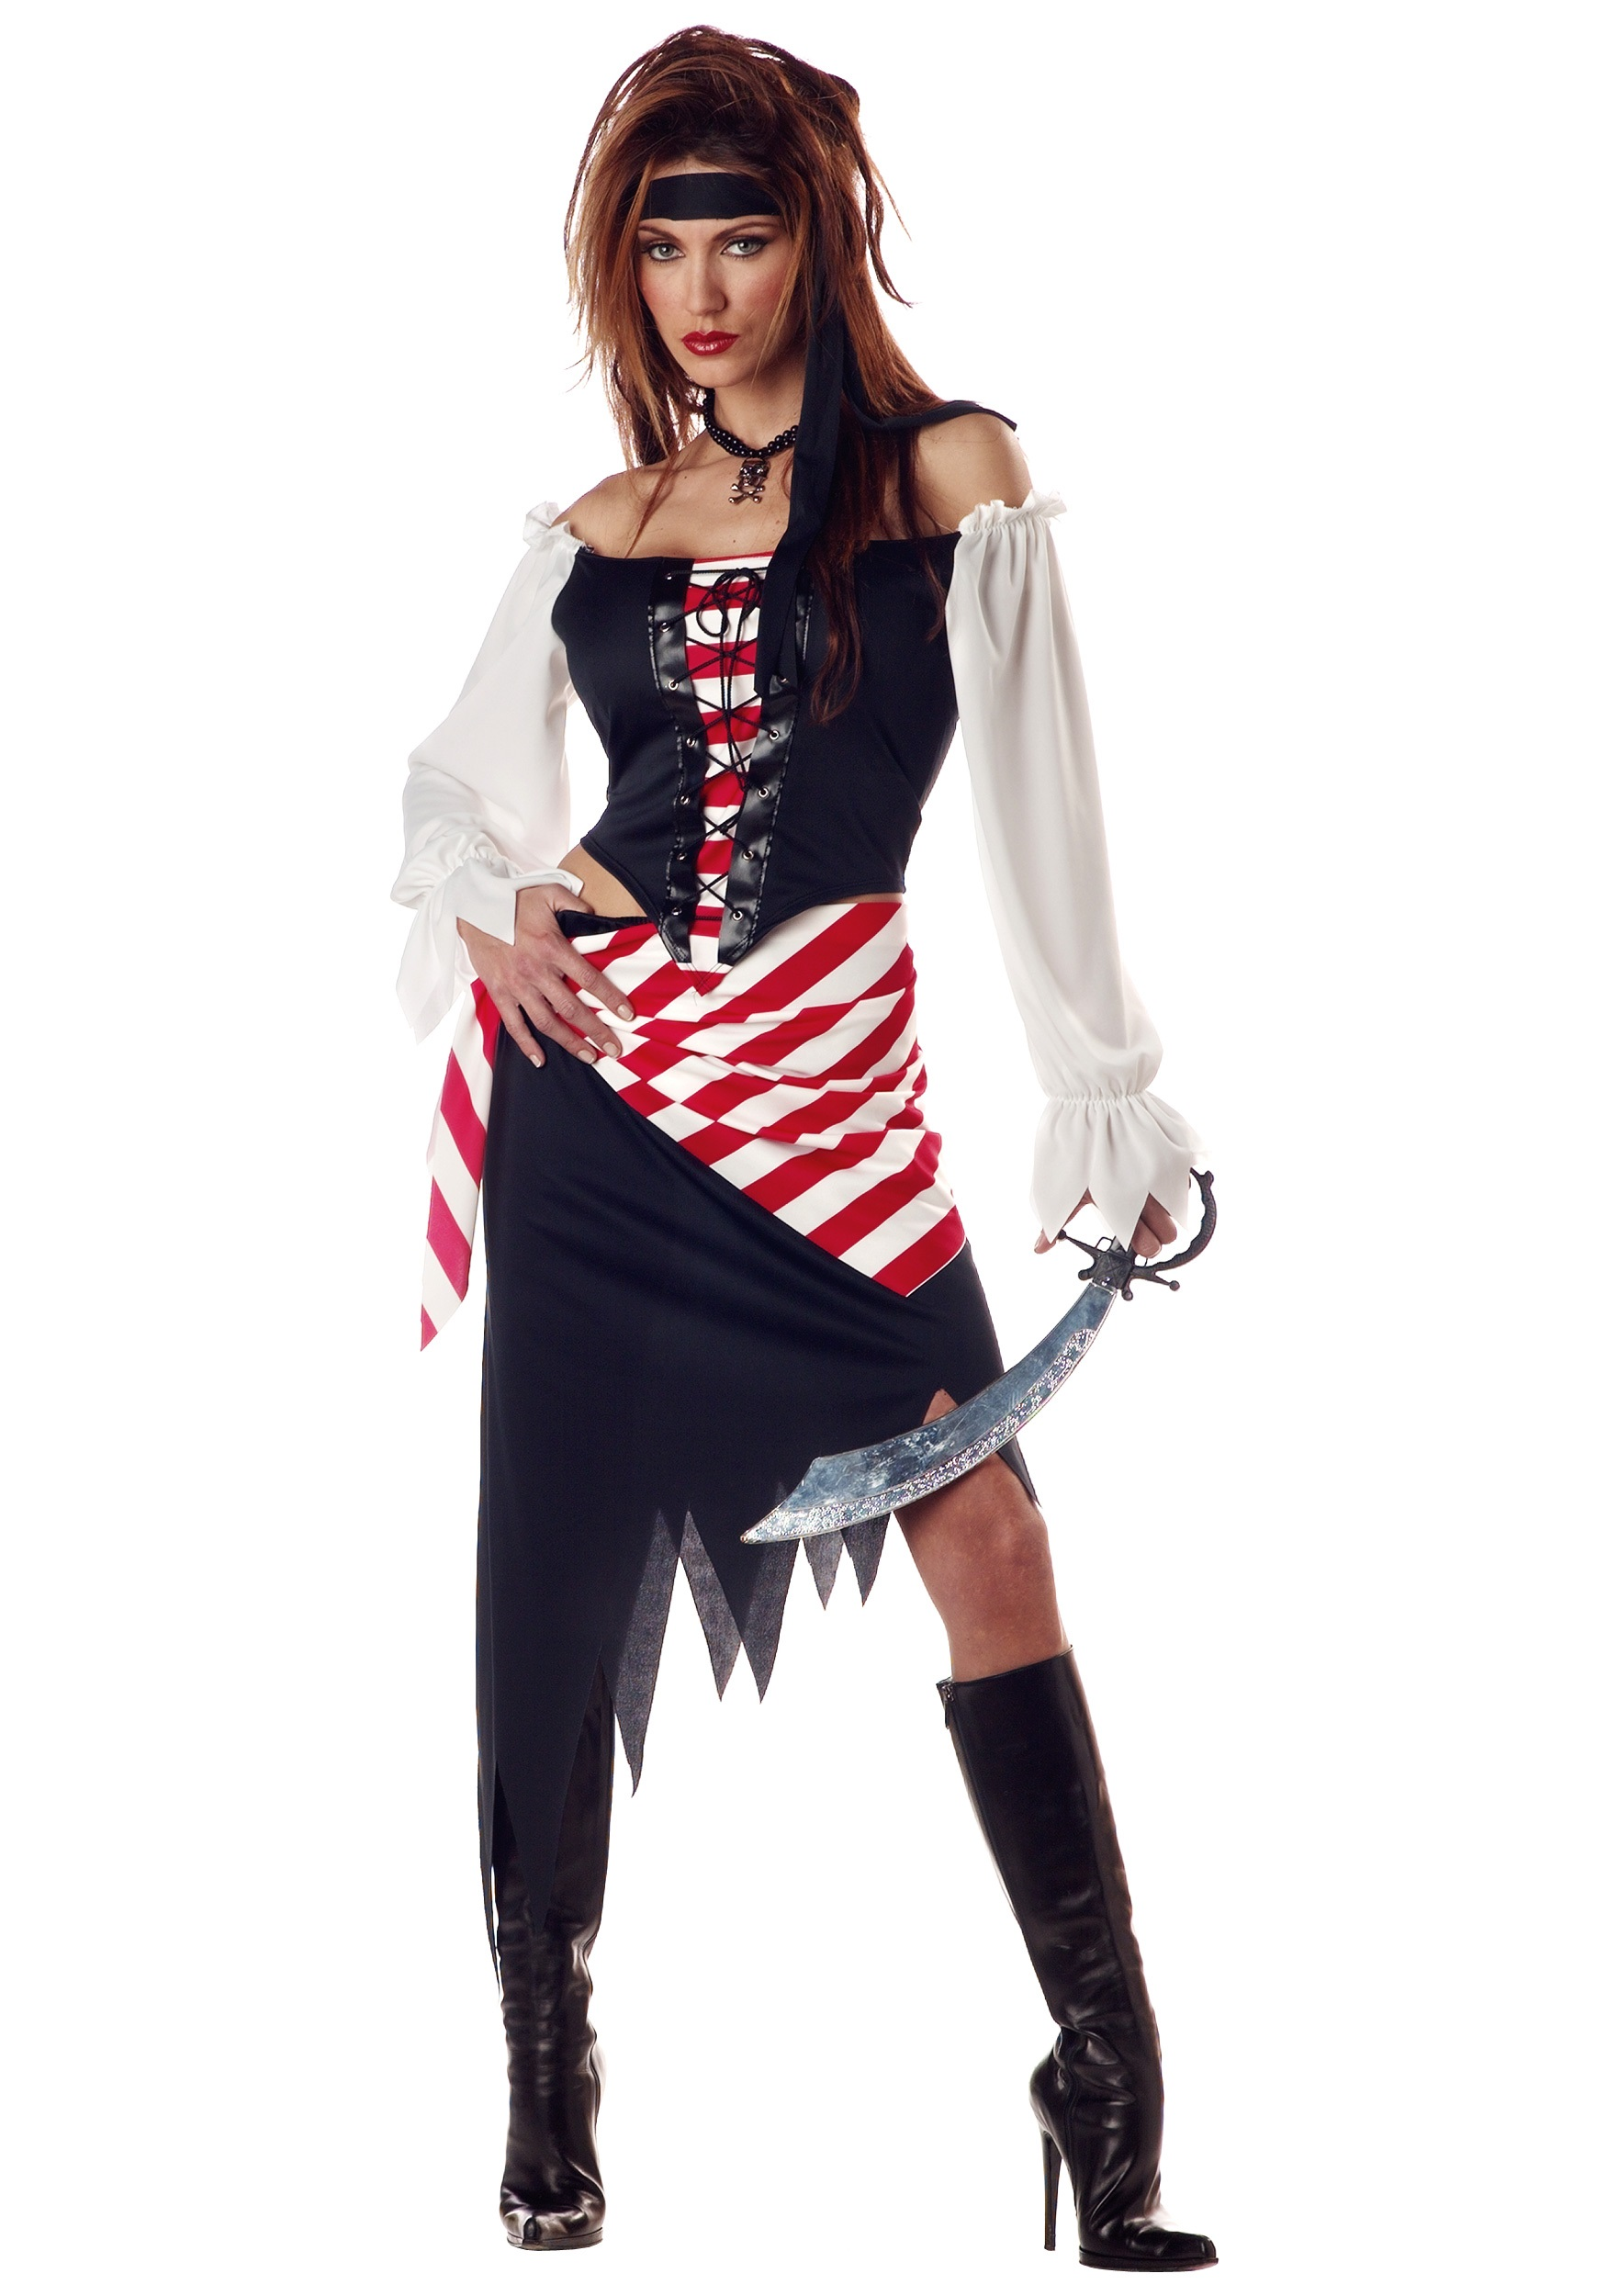 Adult Ruby the Pirate Beauty Costume - Ladies Pirate Costumes 2f37f5c5ede2